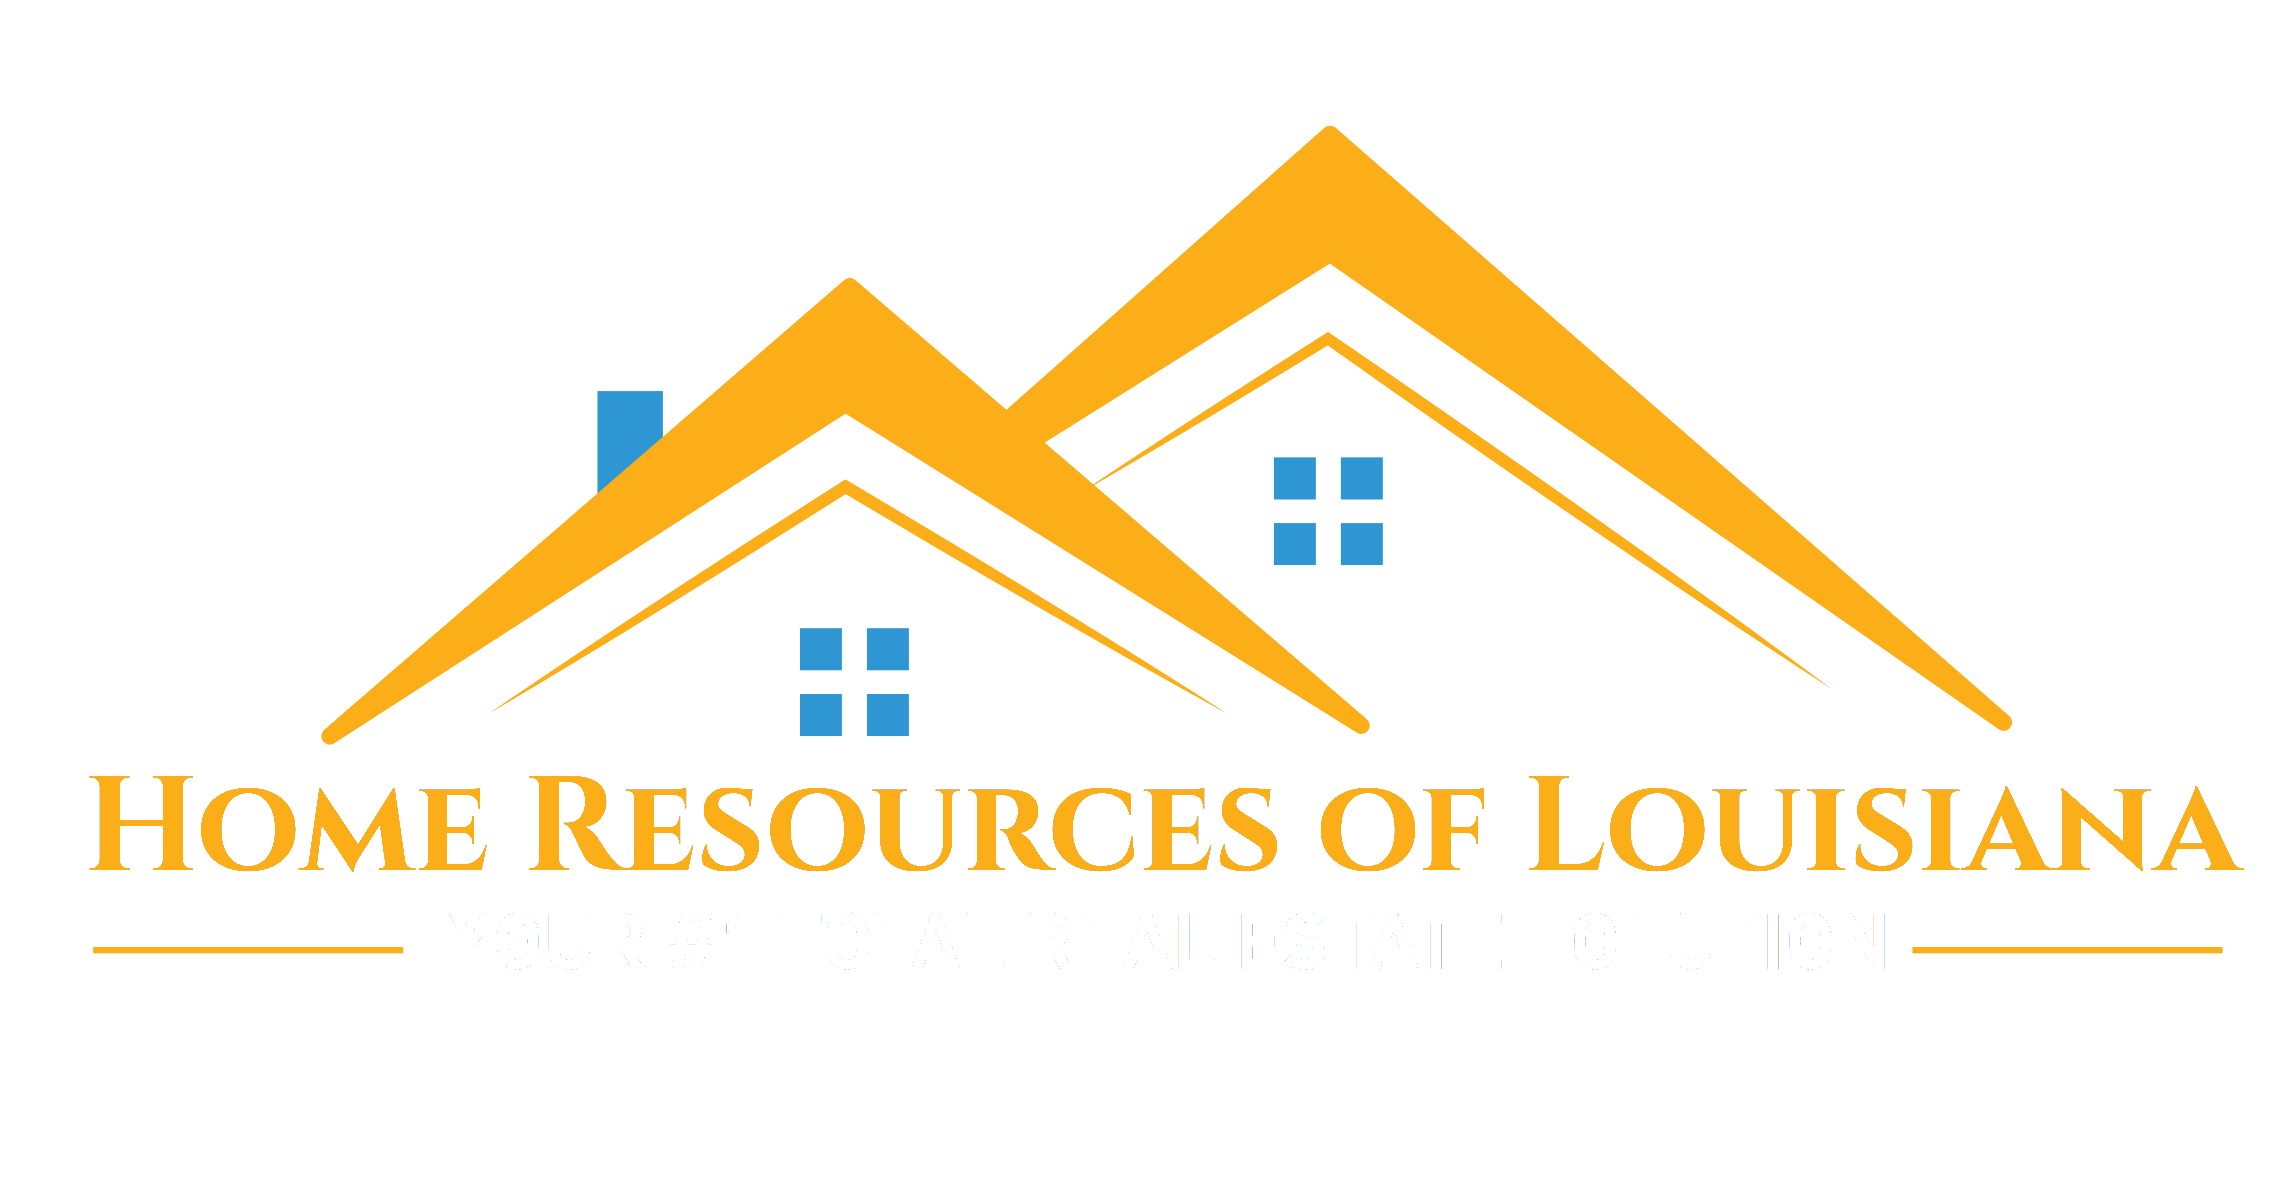 Home Resources of Louisiana